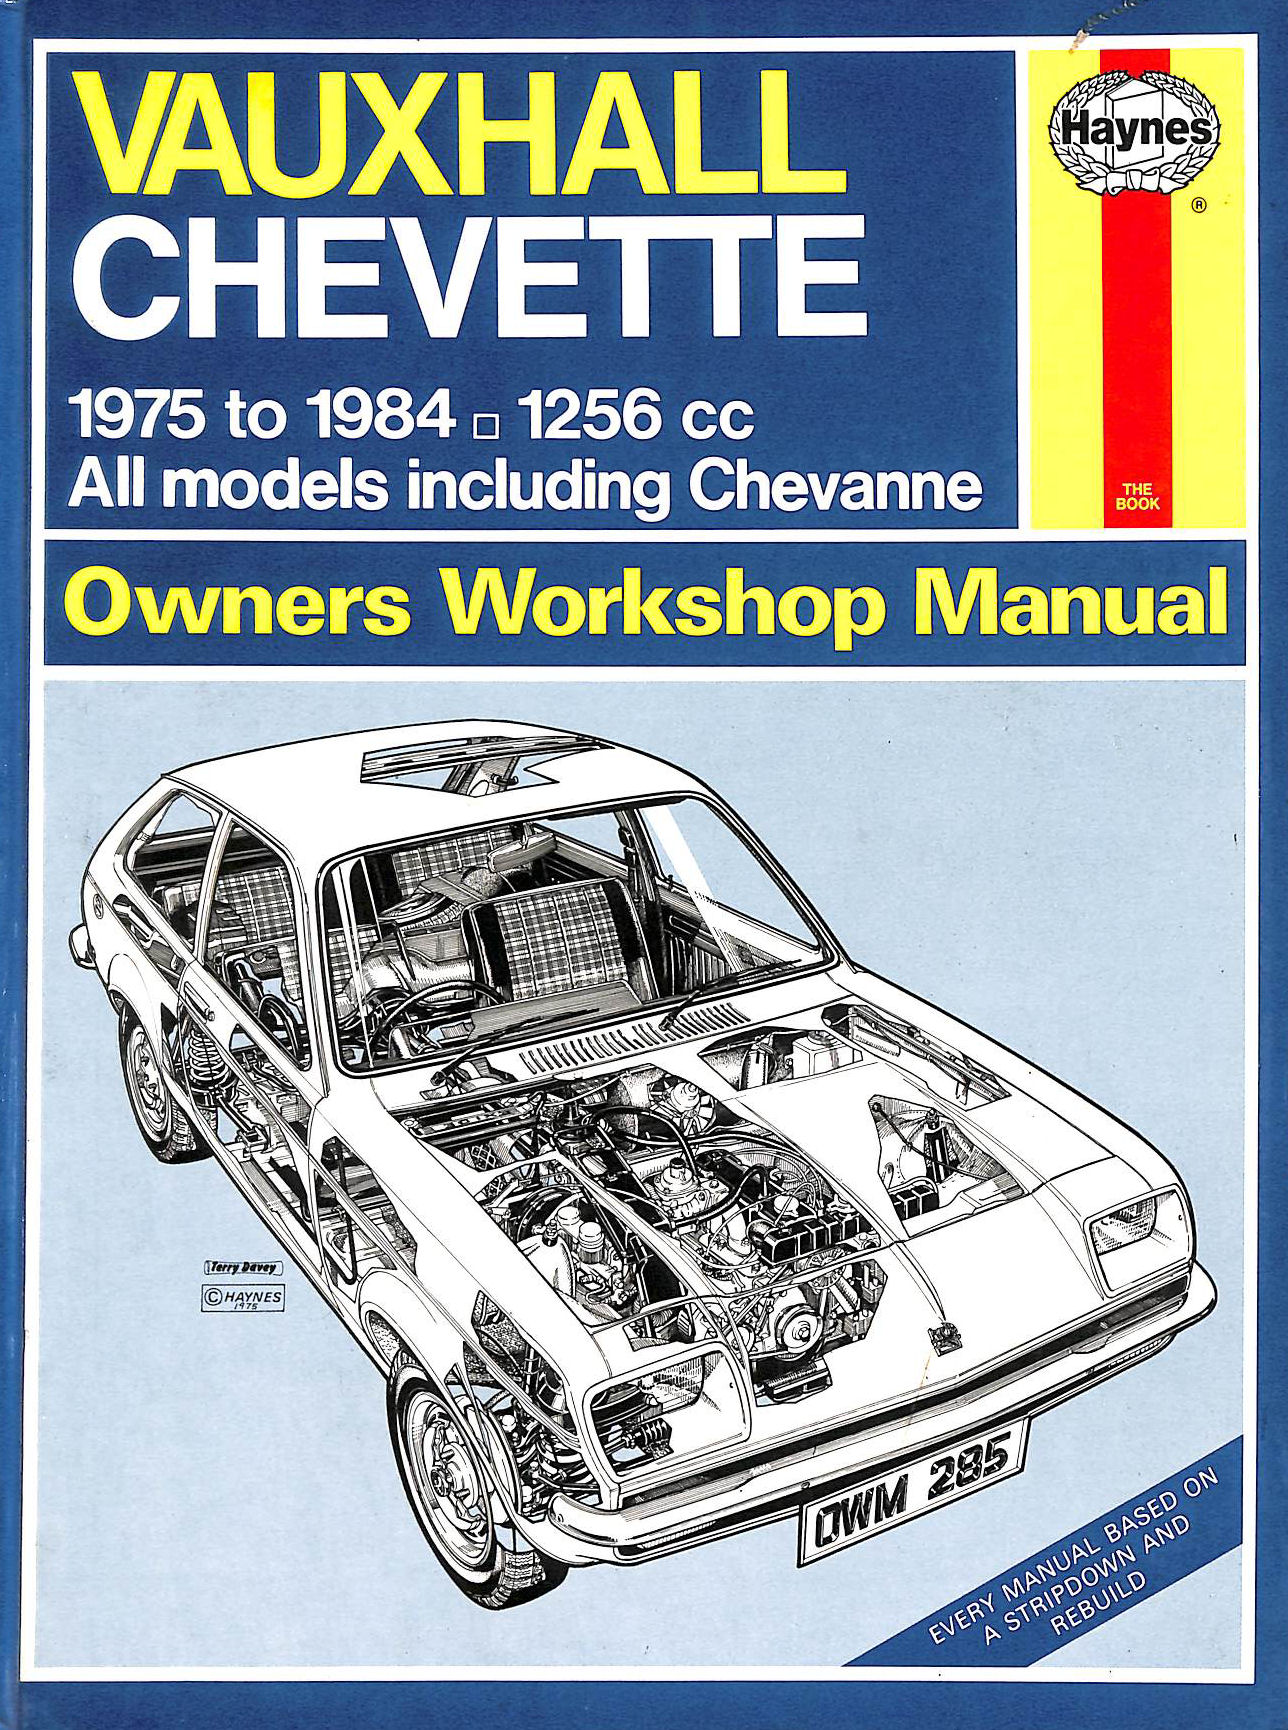 Image for Vauxhall Chevette 1256c.c., 1975-84 Owner's Workshop Manual (Service & repair manuals)